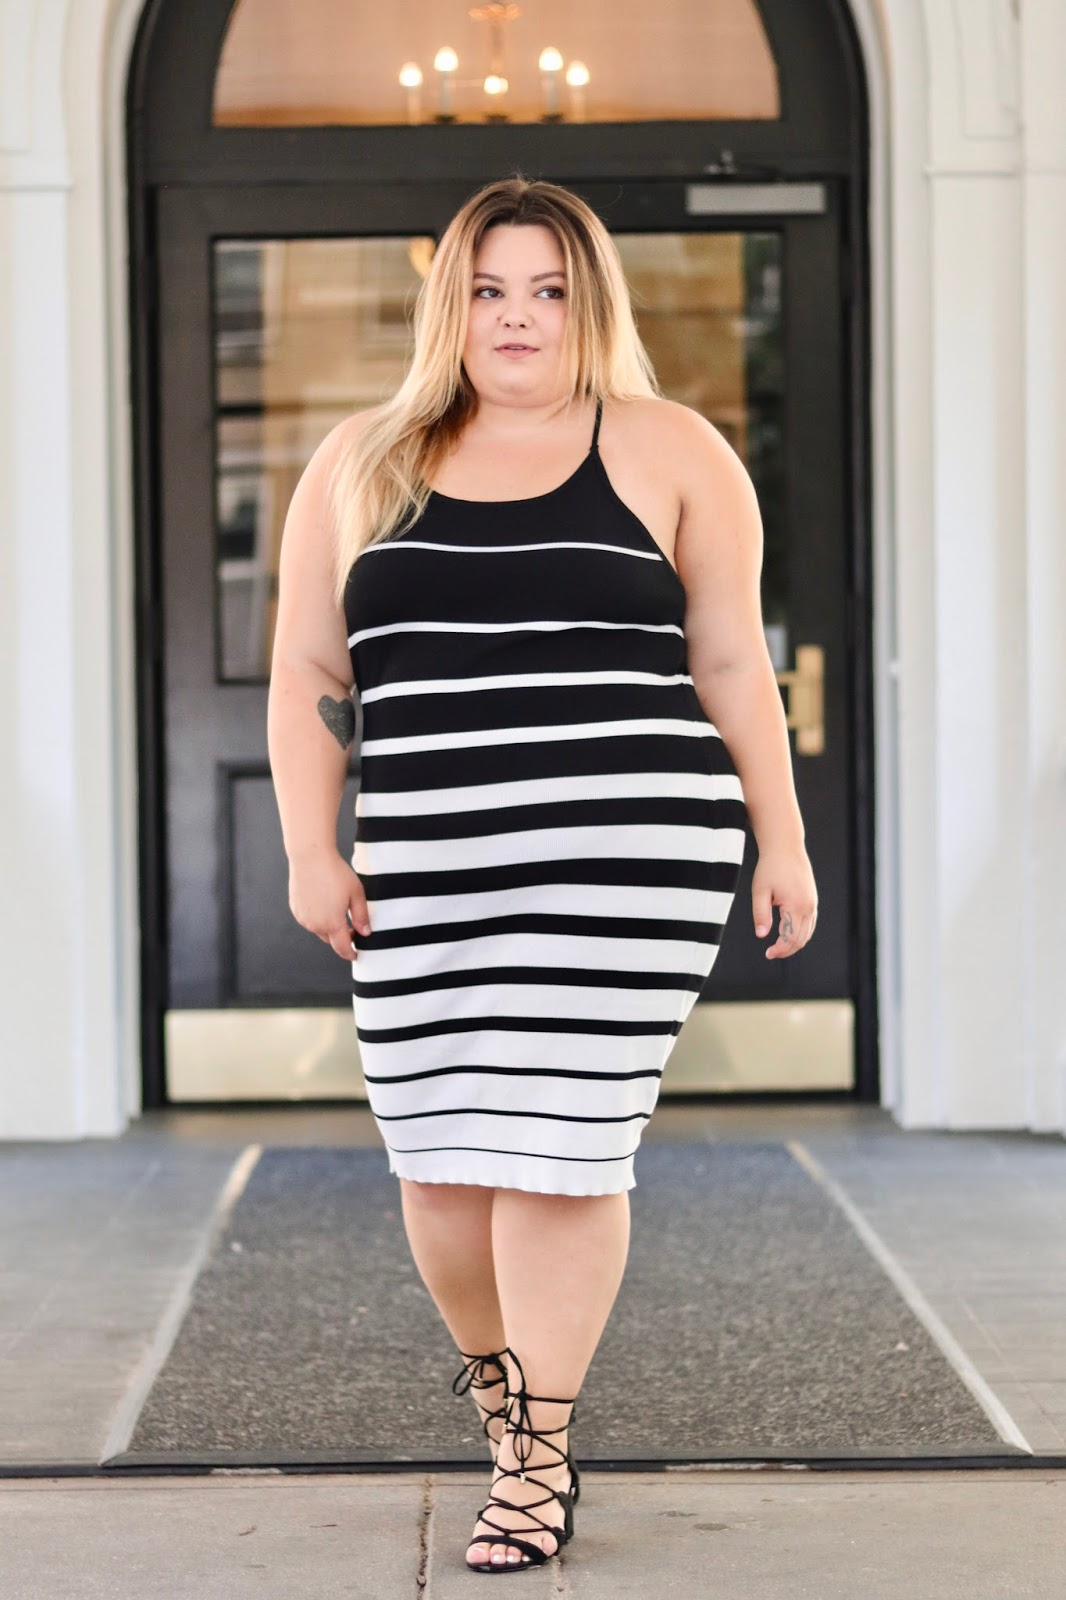 natalie in the city, fashion nova curve, fashion nova, affordable plus size clothing, back to school clothing, should curvy girls wear stripes, plus size stripes, how to wear horizontal stripes, make stripes flattering, curves and confidence, embrace my curves , plus size model, Chicago blogger, plus size fashion blogger